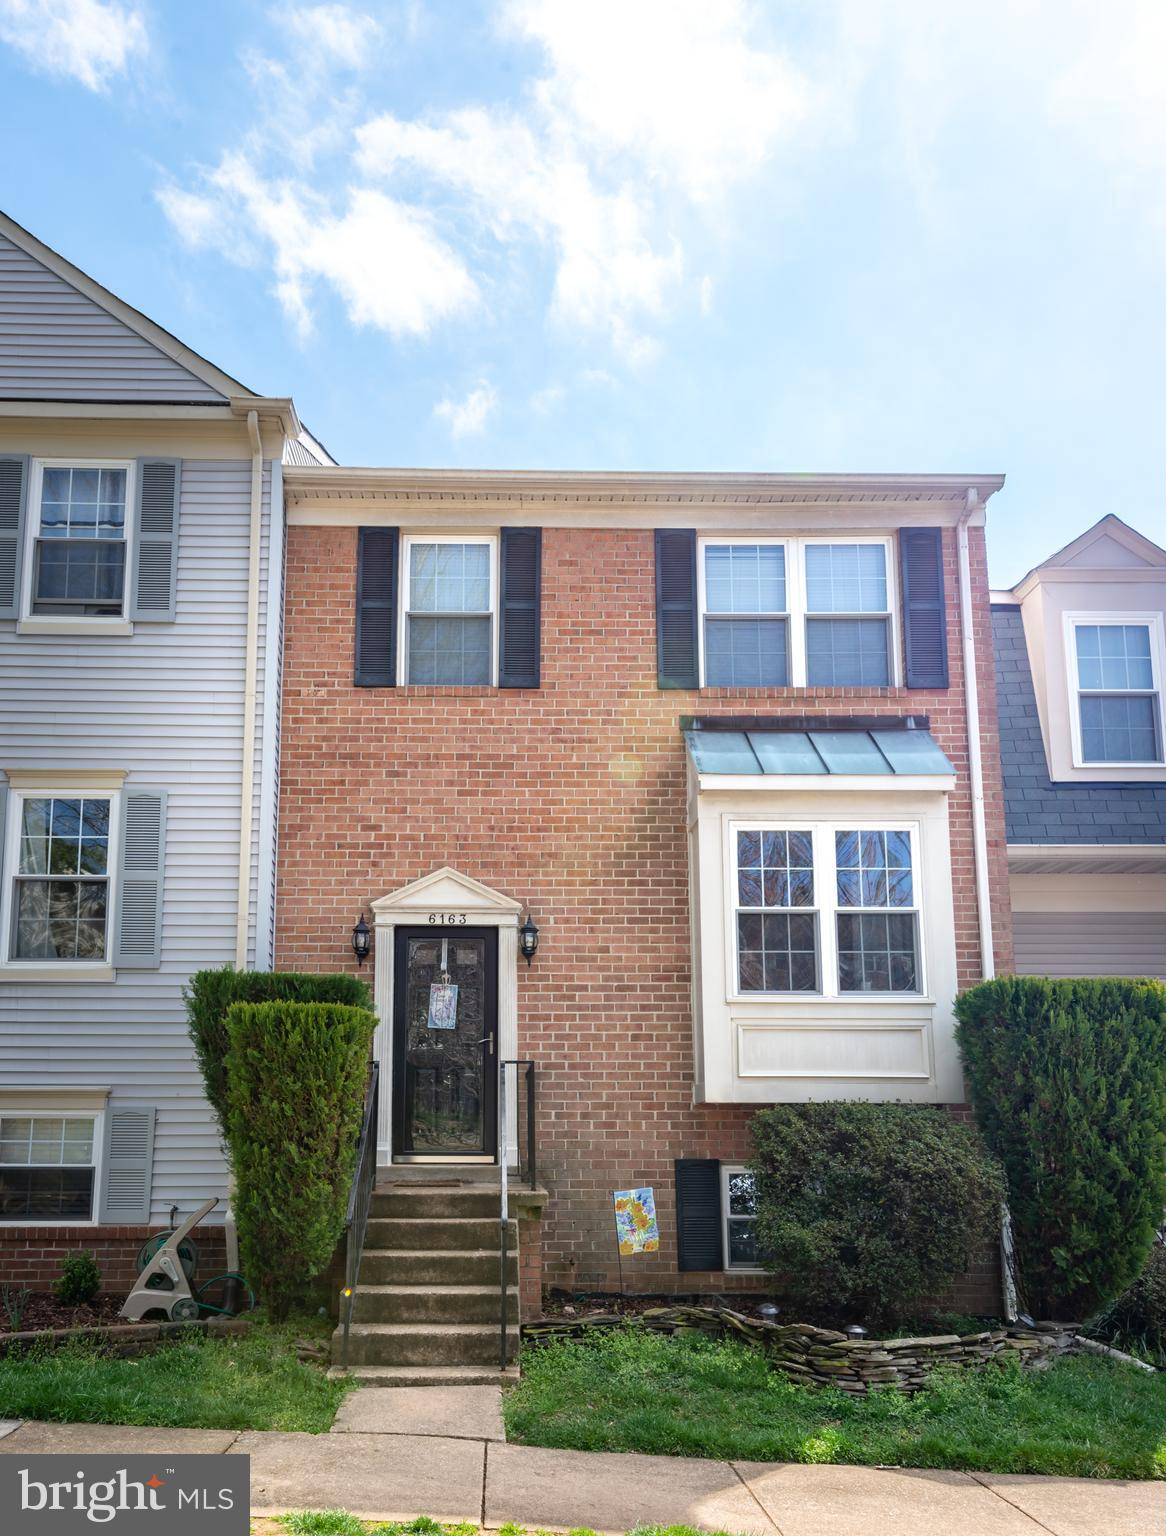 CHARMING 3 LEVEL TOWNHOME IN WEST SPRINGFIELD*4 BEDROOM/3.5 BATH*LIVING ROOM WITH BAY WINDOW*HARDWOO